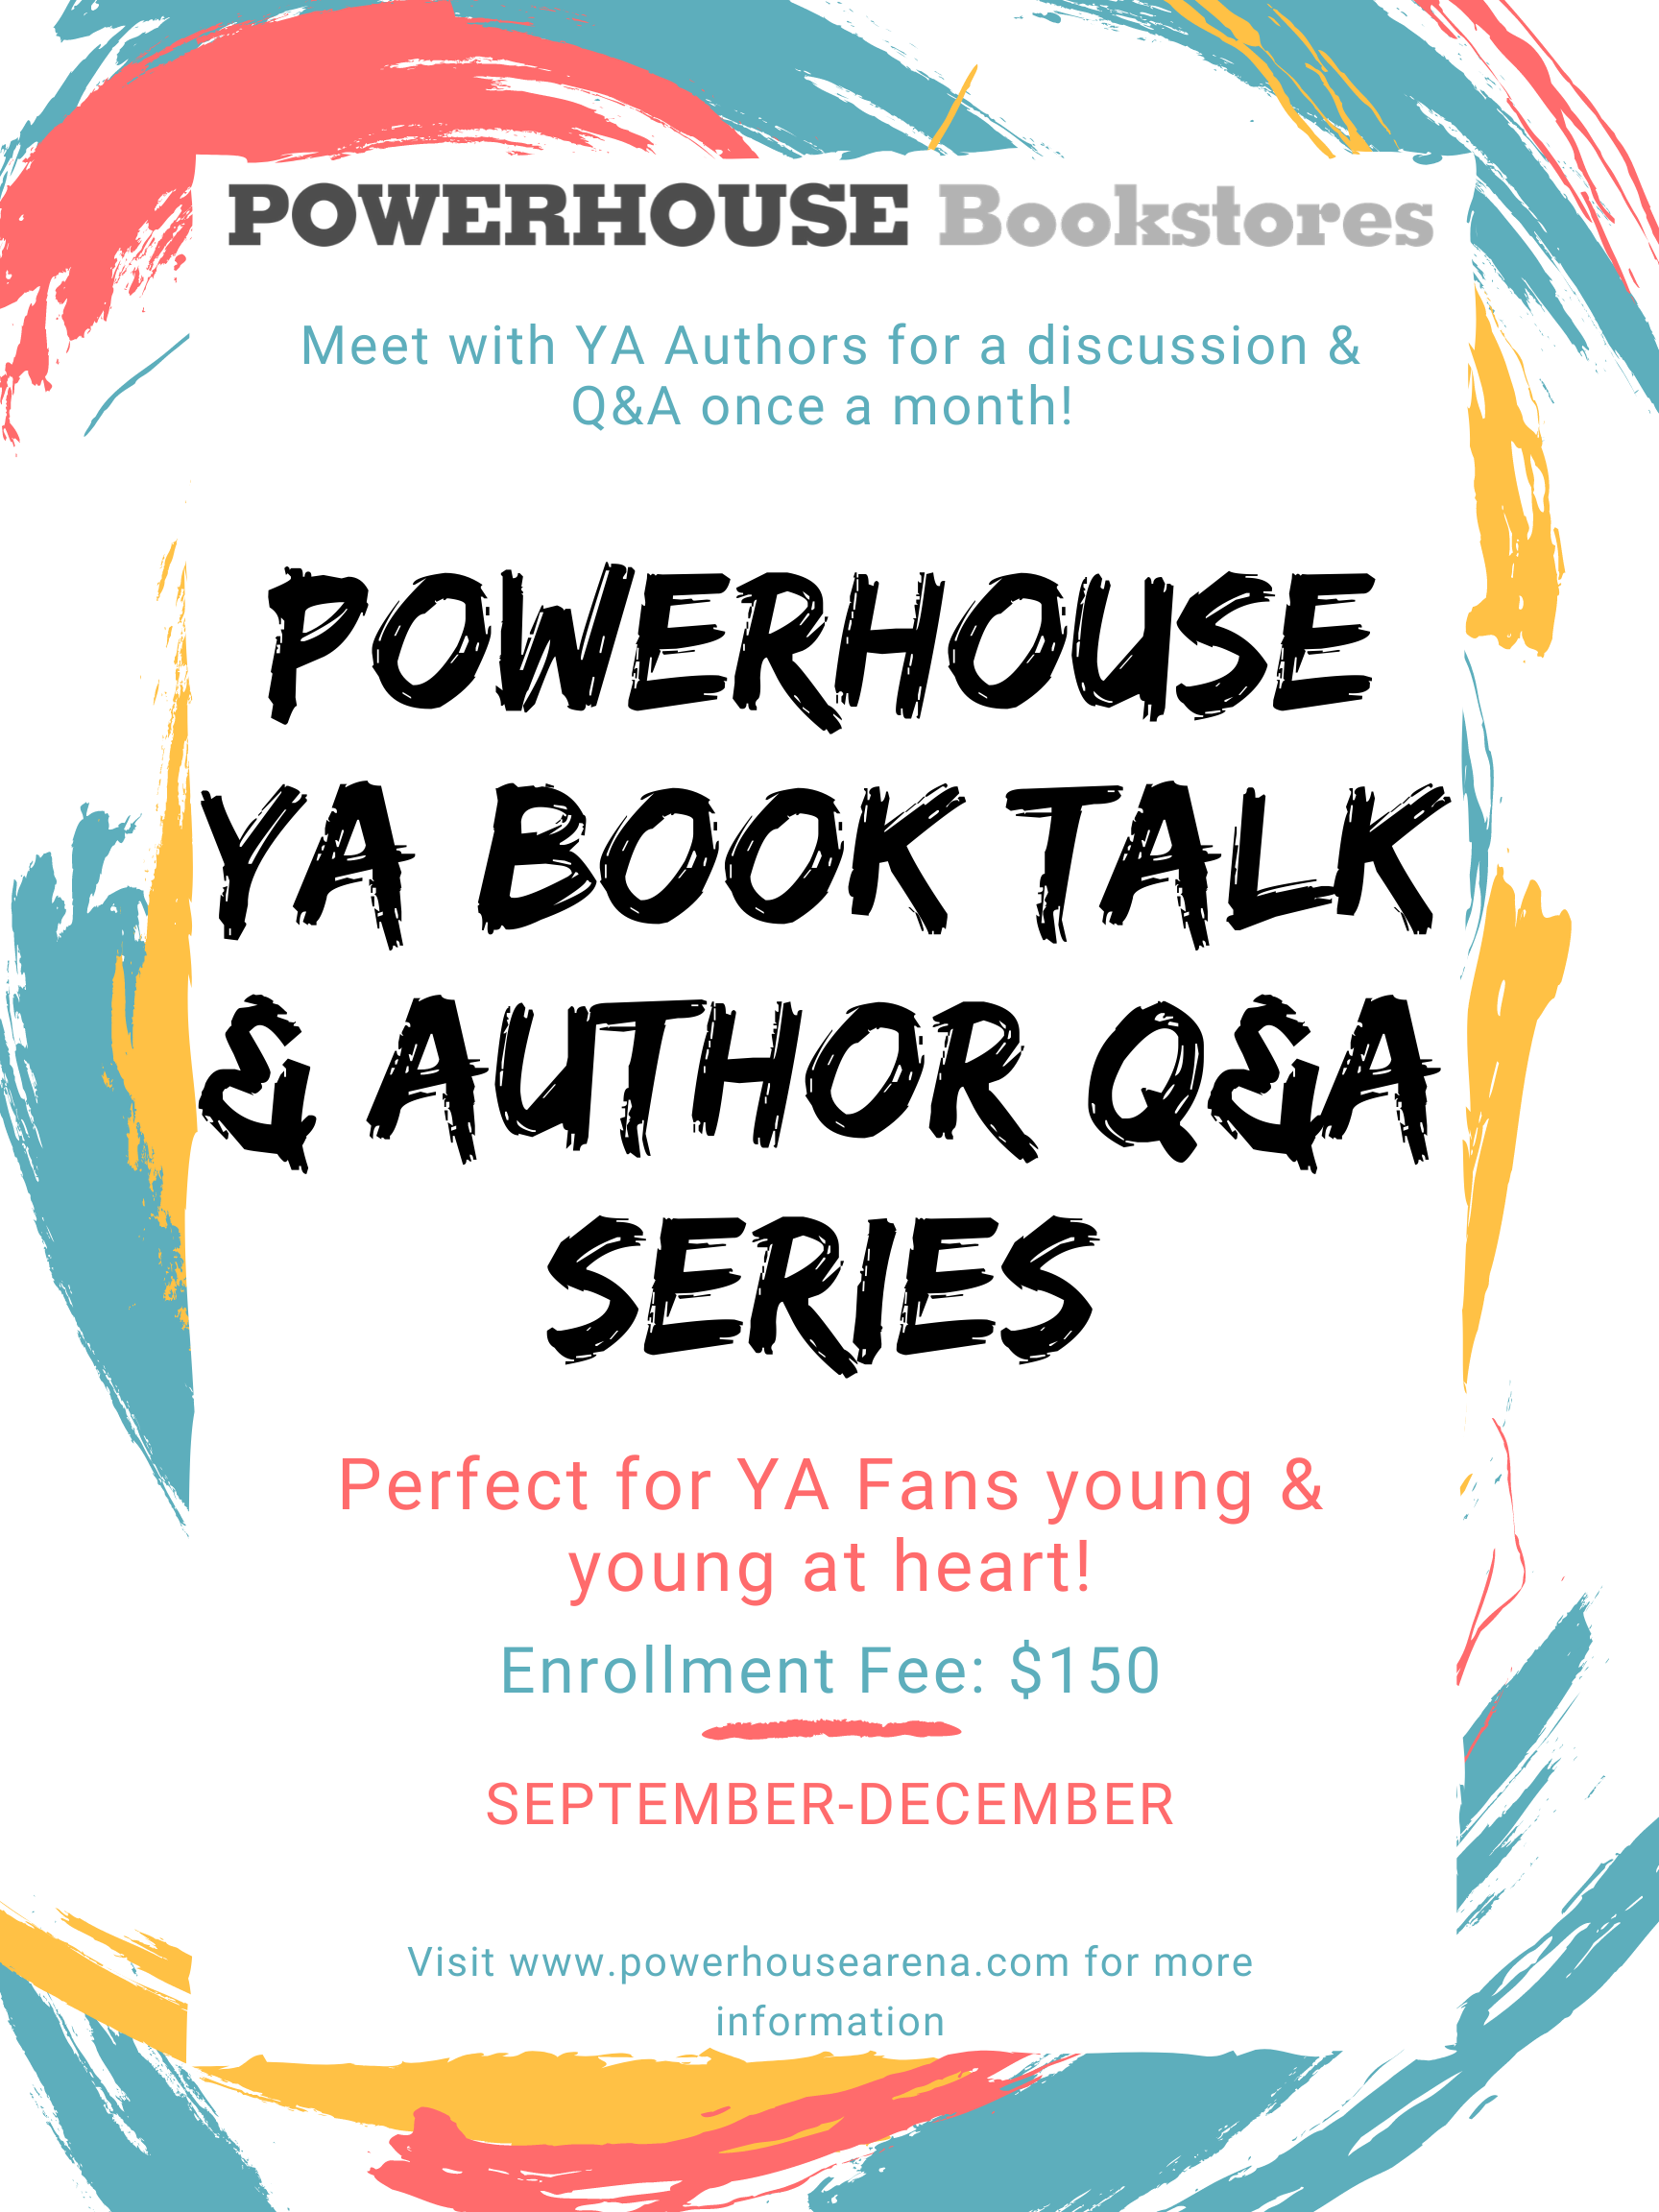 POWERHOUSE YA Book Talk and Author Q&A Series